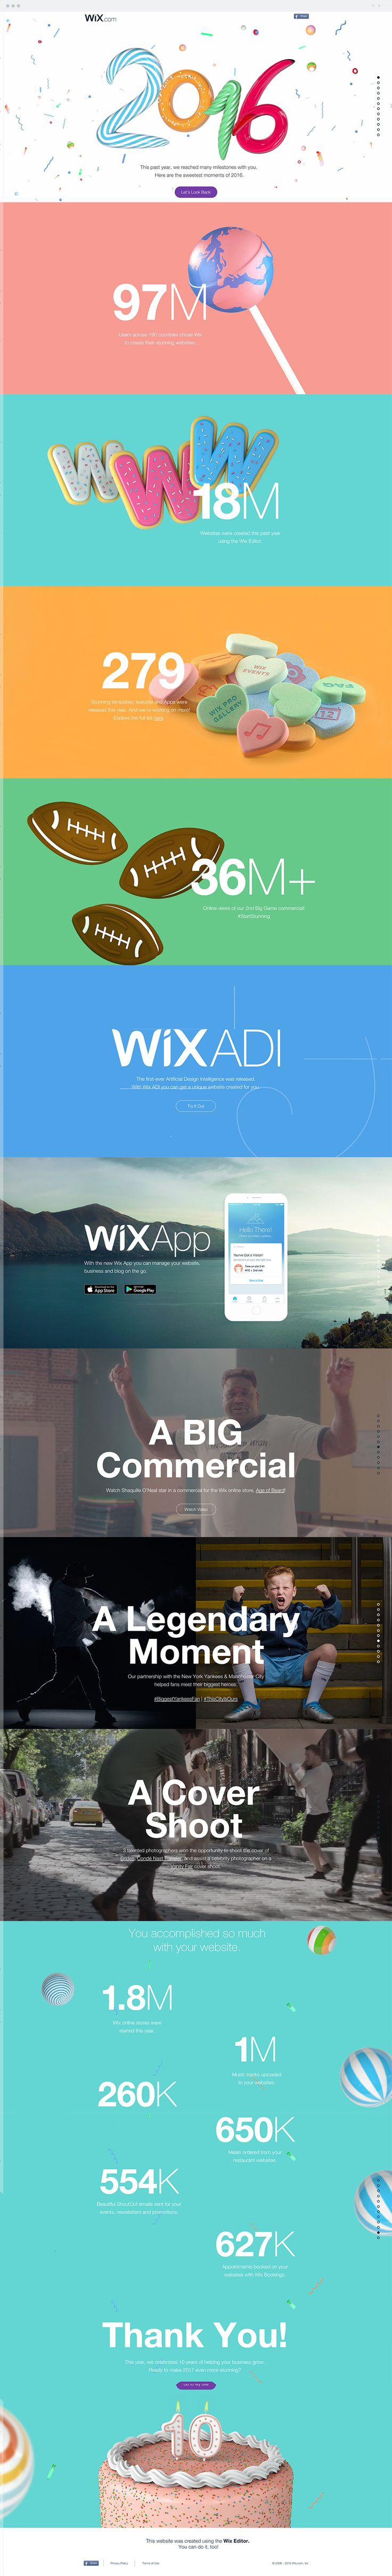 This past year has been stunning, inspiring and memorable thanks to our users! Check out the most stunning moments of 2016 at Wix.com.